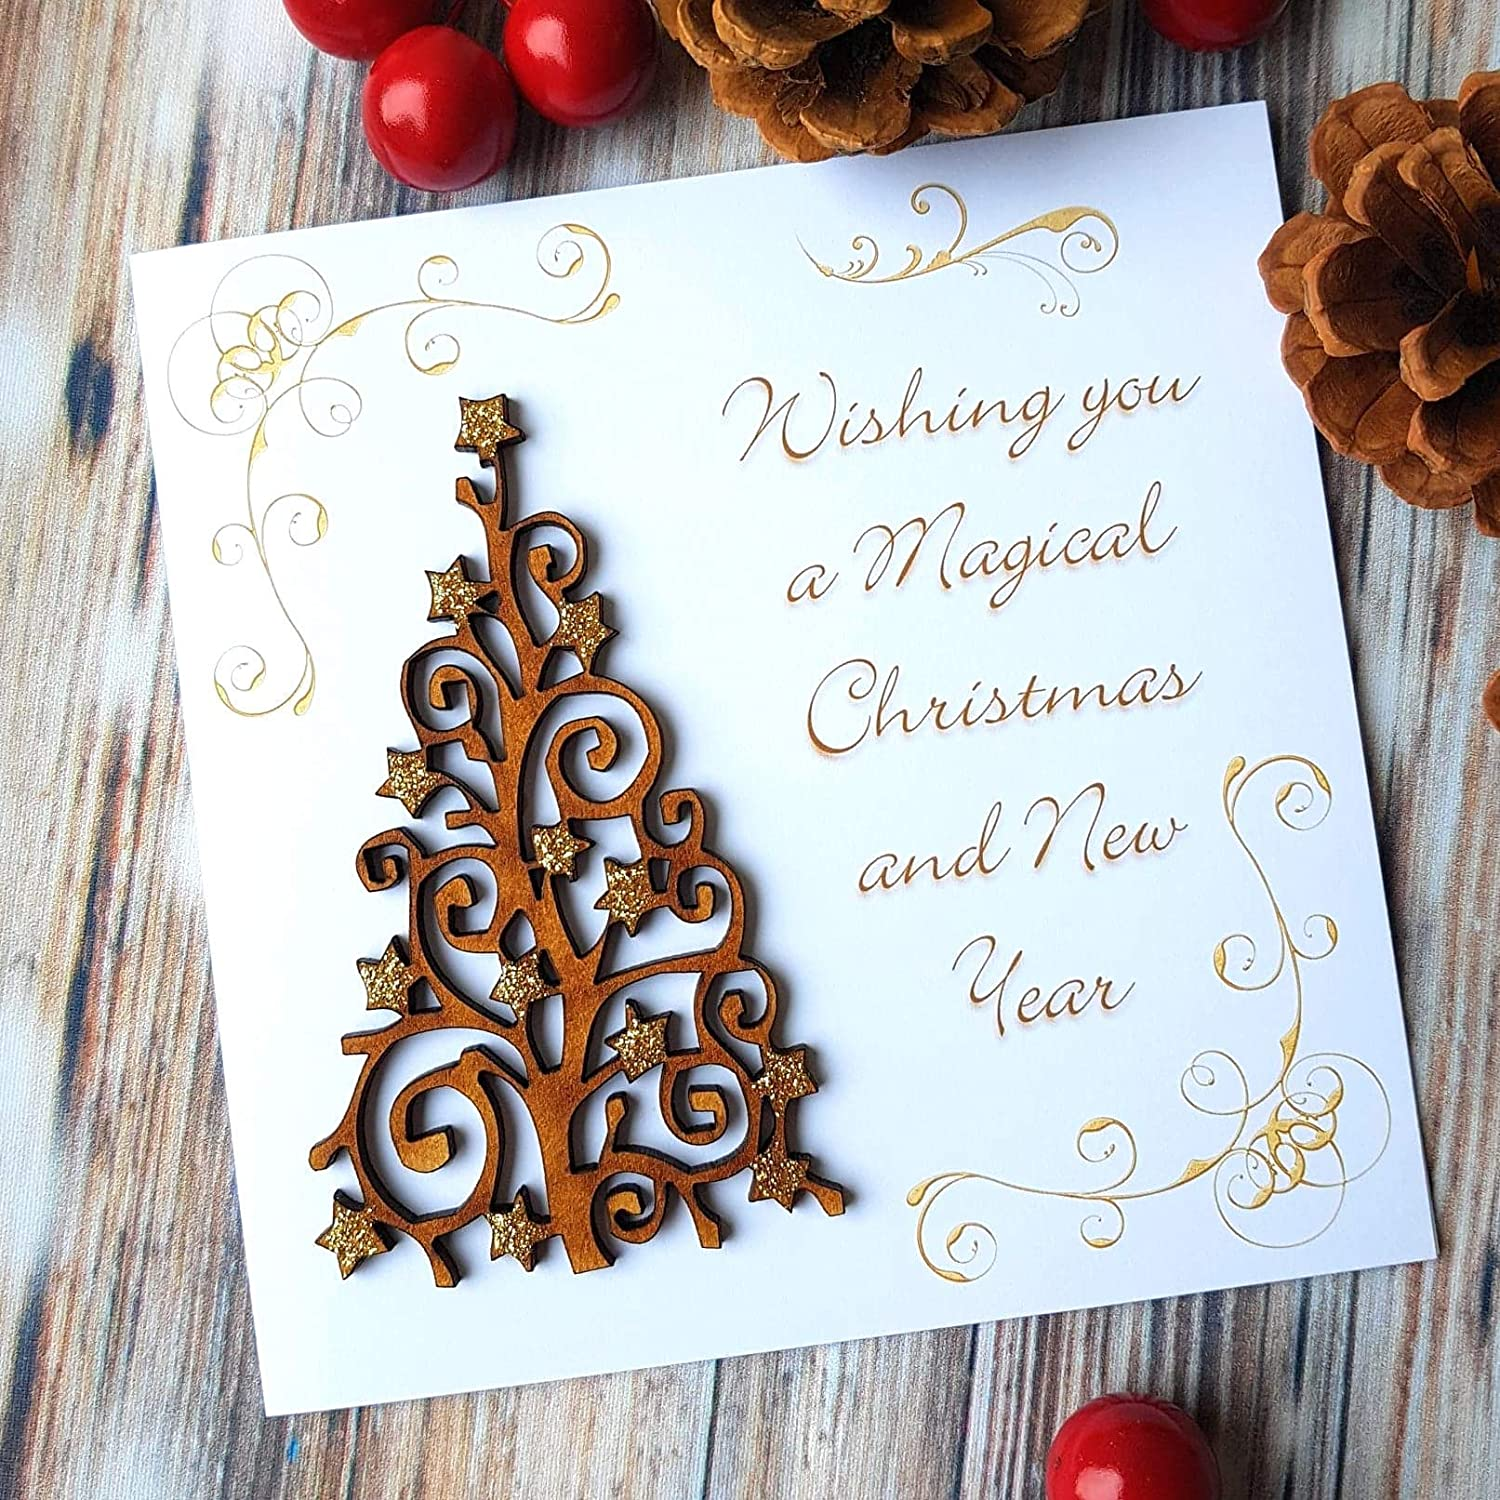 Handmade Christmas Card With Rustic Wooden Sparkly Tree Wishing